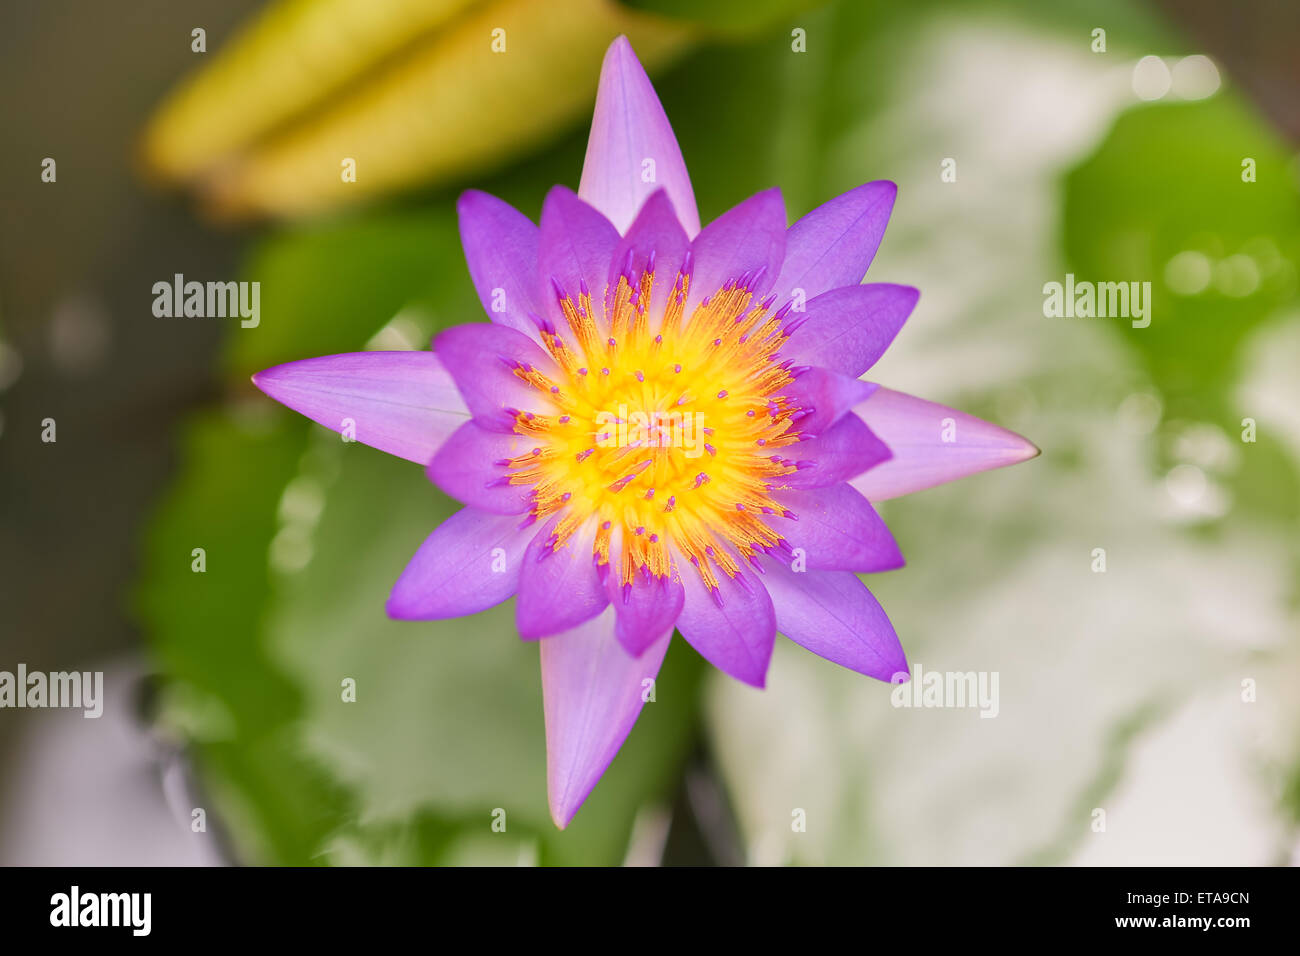 Close Up Asian Lotus Flower In Water Stock Photo 83820149 Alamy